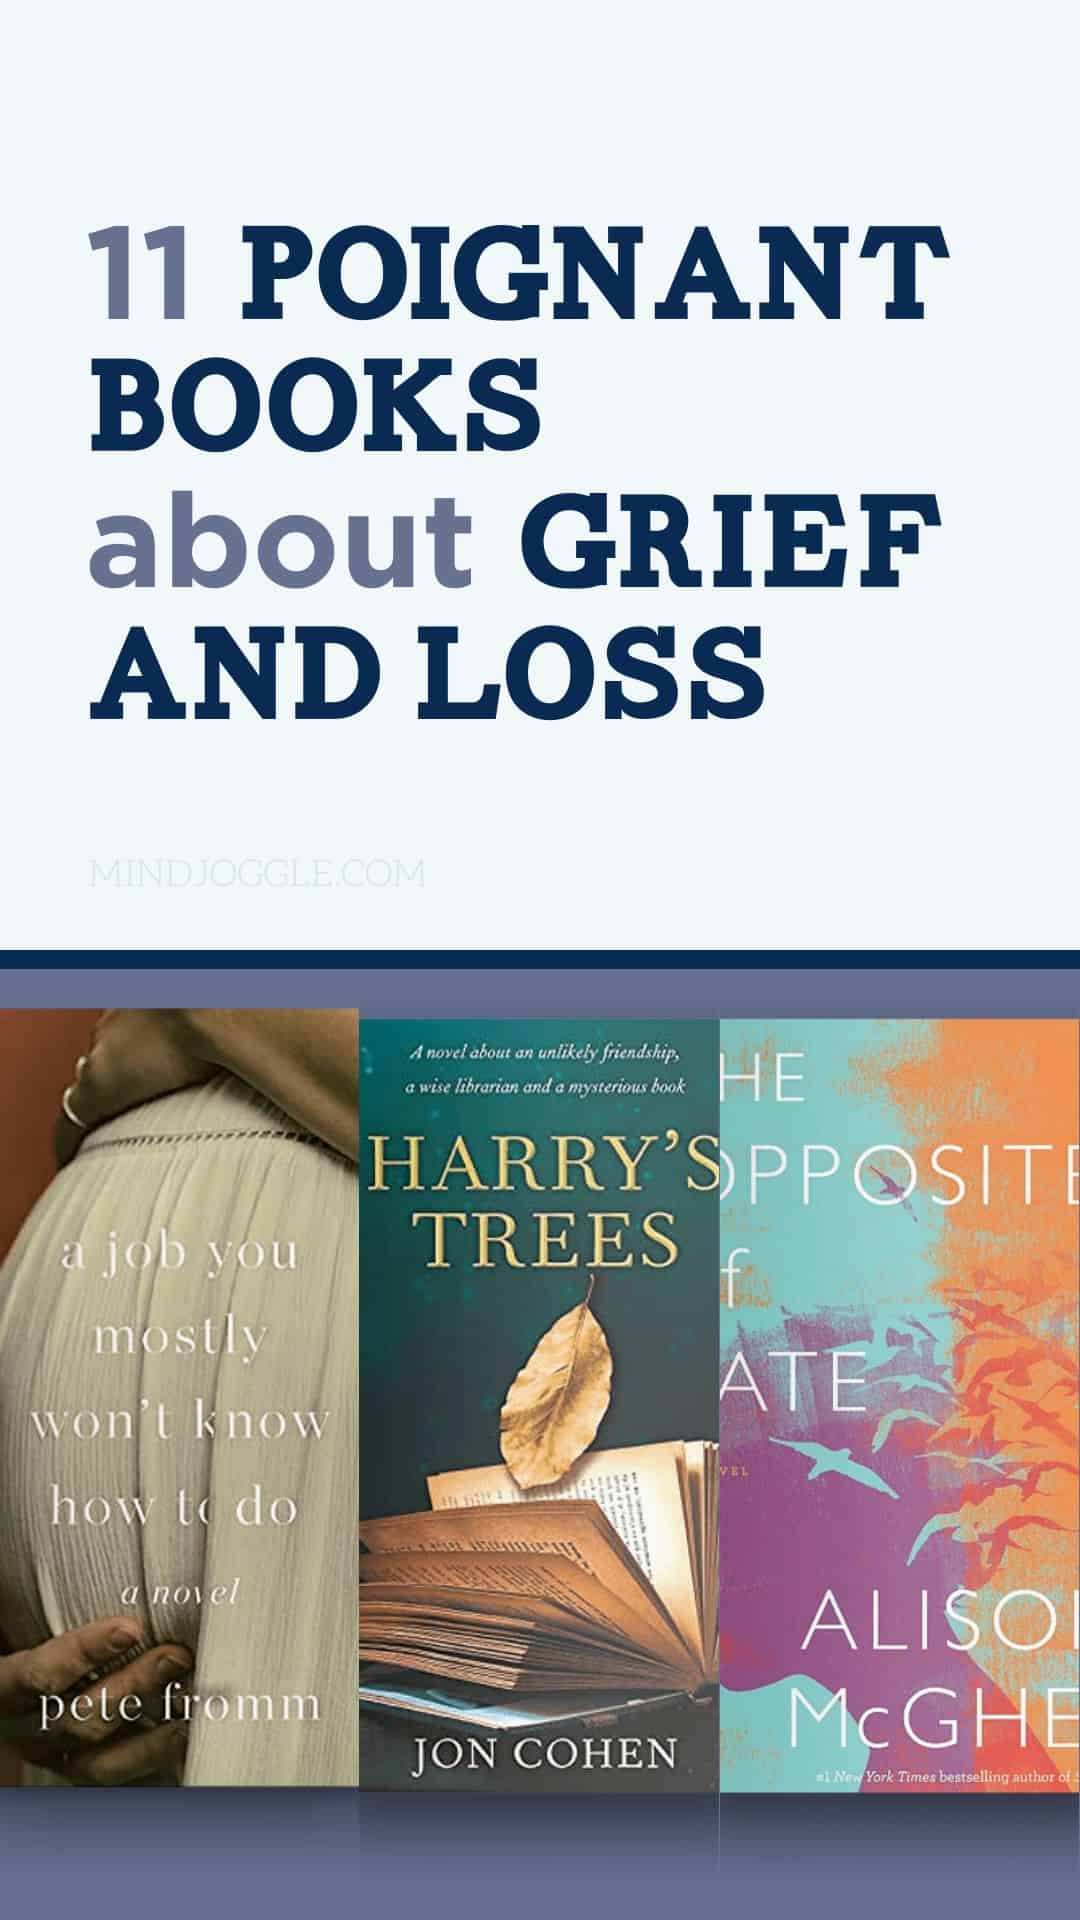 11 Poignant Books About Grief and Loss